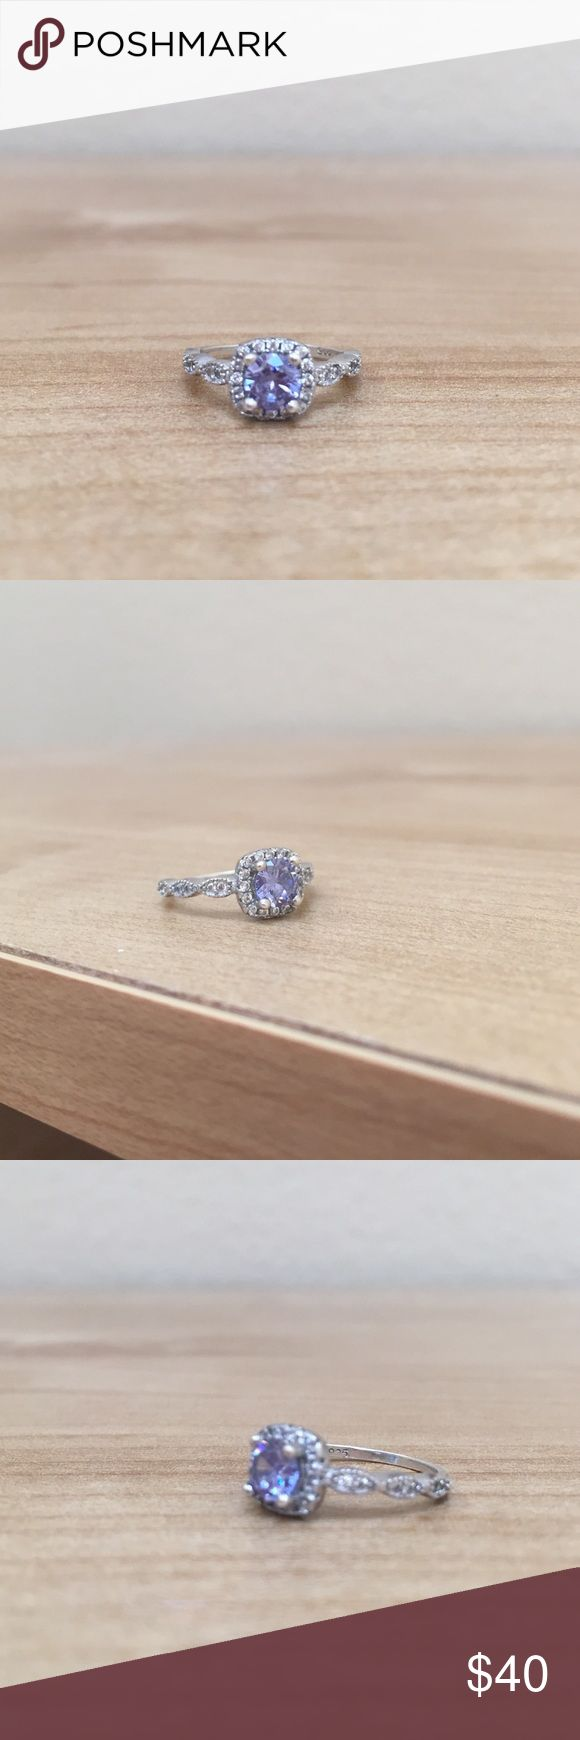 Art Deco Accent Halo Promise Ring  Silver with rhodium plating. Center stone is approximate equivalent of .75 carat diamond. Synthetic Tanzanite and diamond simulants in the halo. Art deco band. Gorgeous lavender/blue stone. Originally purchased from TigerGems on Etsy. Perfect as a promise ring for a lady or a special gift for yourself! As with all silver jewelry, this ring should be cleaned every so often. Not from Zales; listed for exposure. Zales Jewelry Rings